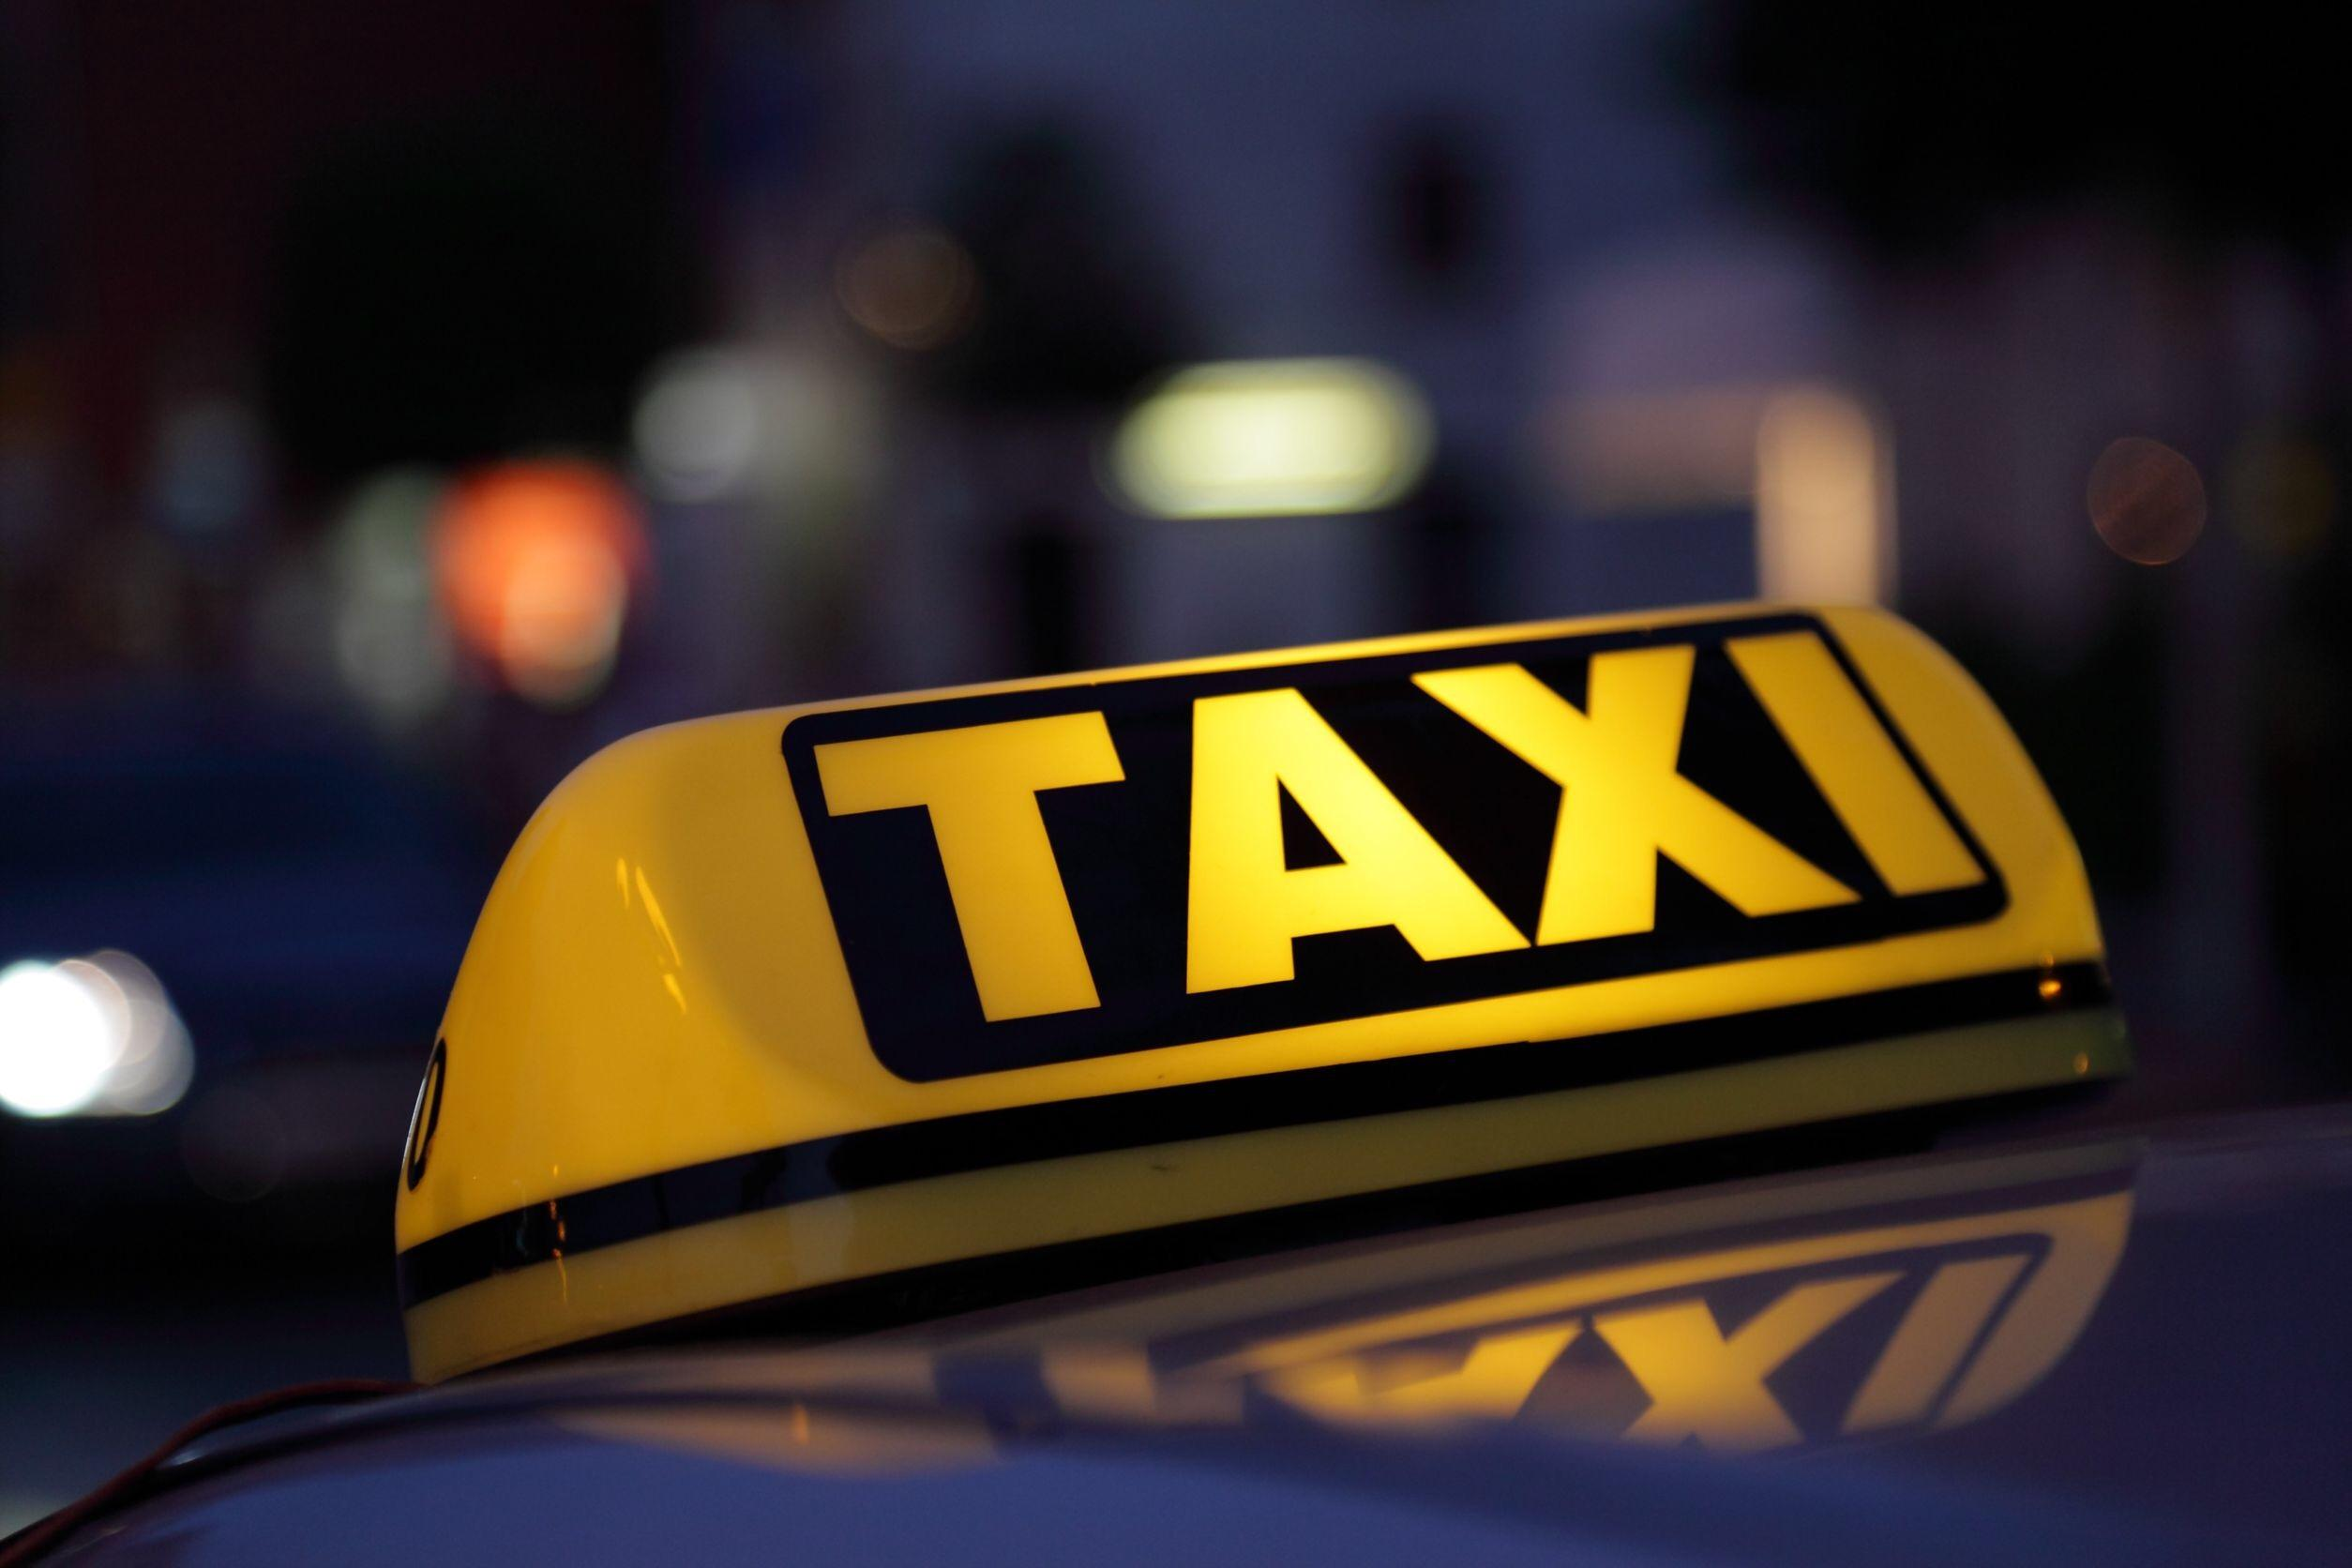 Irving Taxi Cab image 6